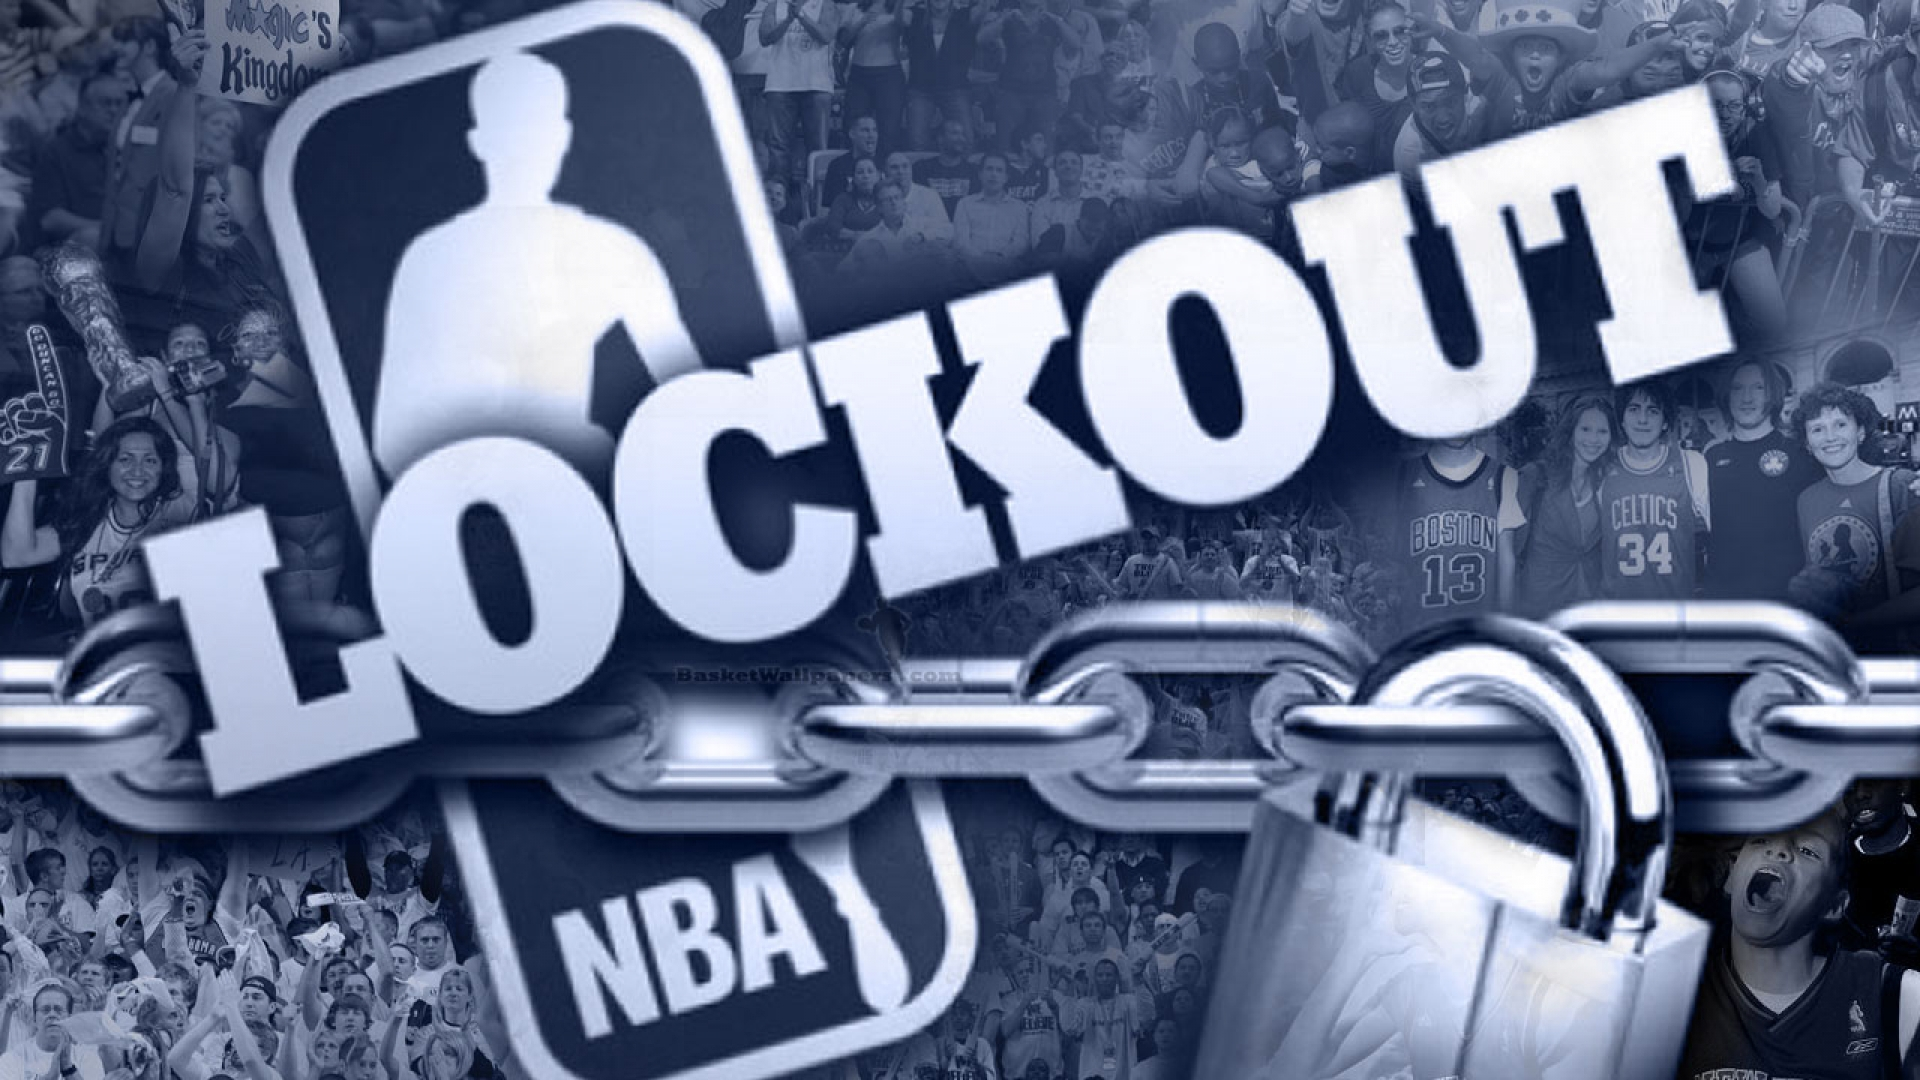 NBA Lockout Wallpaper